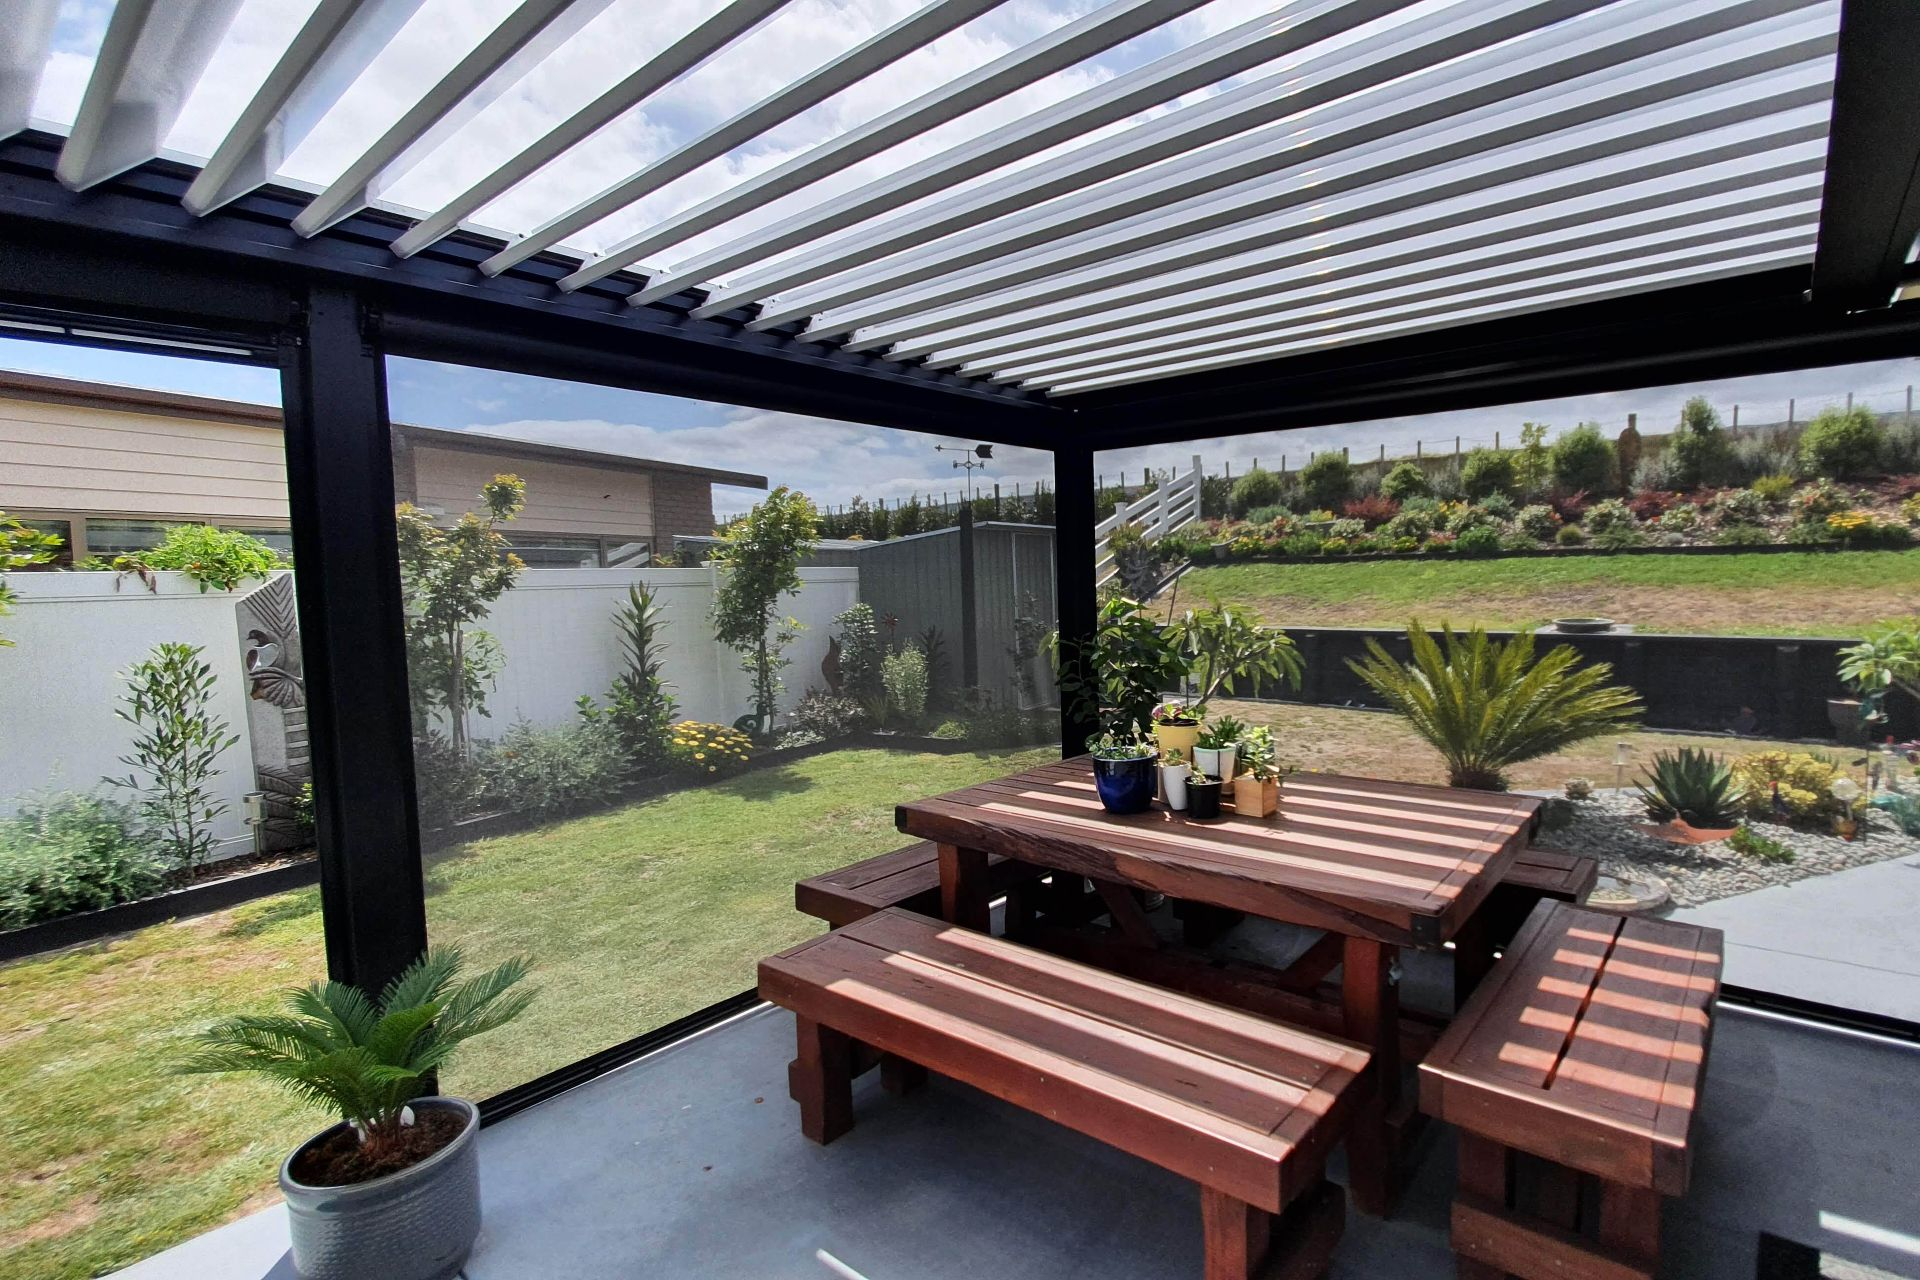 An outdoor patio area with table and chairs is covered with a black louvre roof and enclosed with outdoor blinds